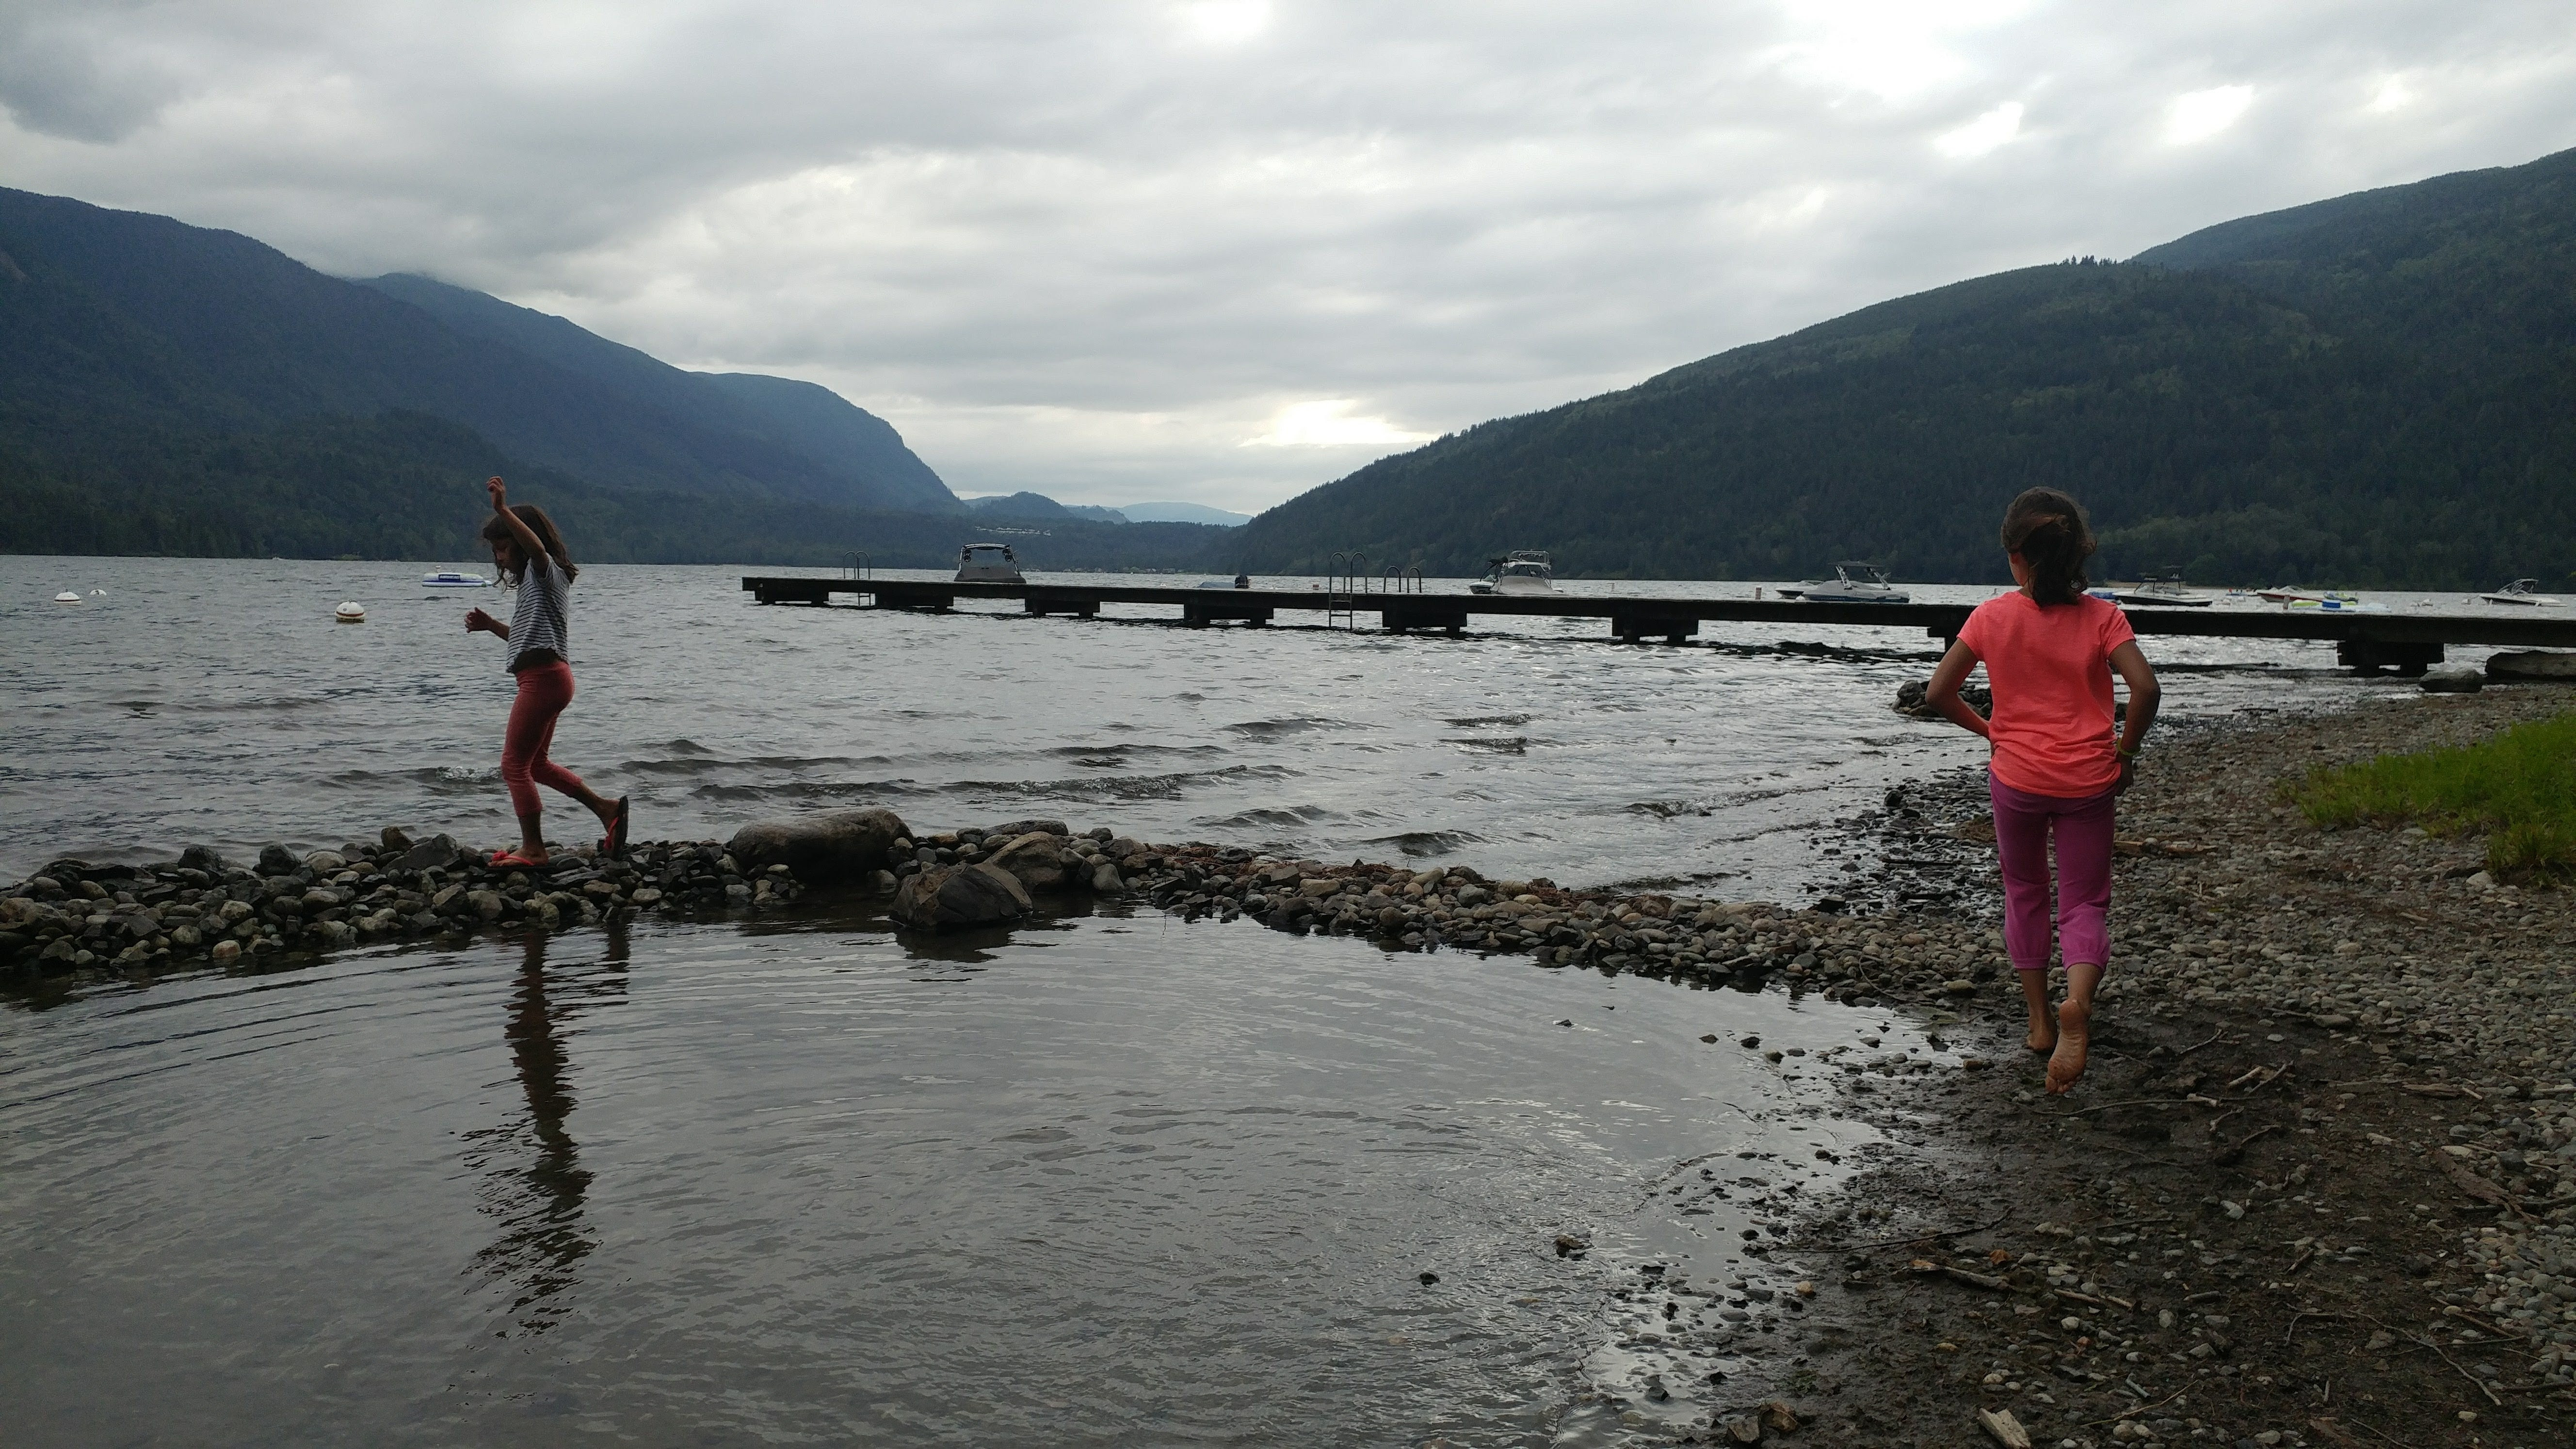 """This place is an awesome and family-friendly campground- the """"Sunnyside Campground located in Cultus lake Chilliwack bc. This was our first family camping trip ever. These moments that last forever."""